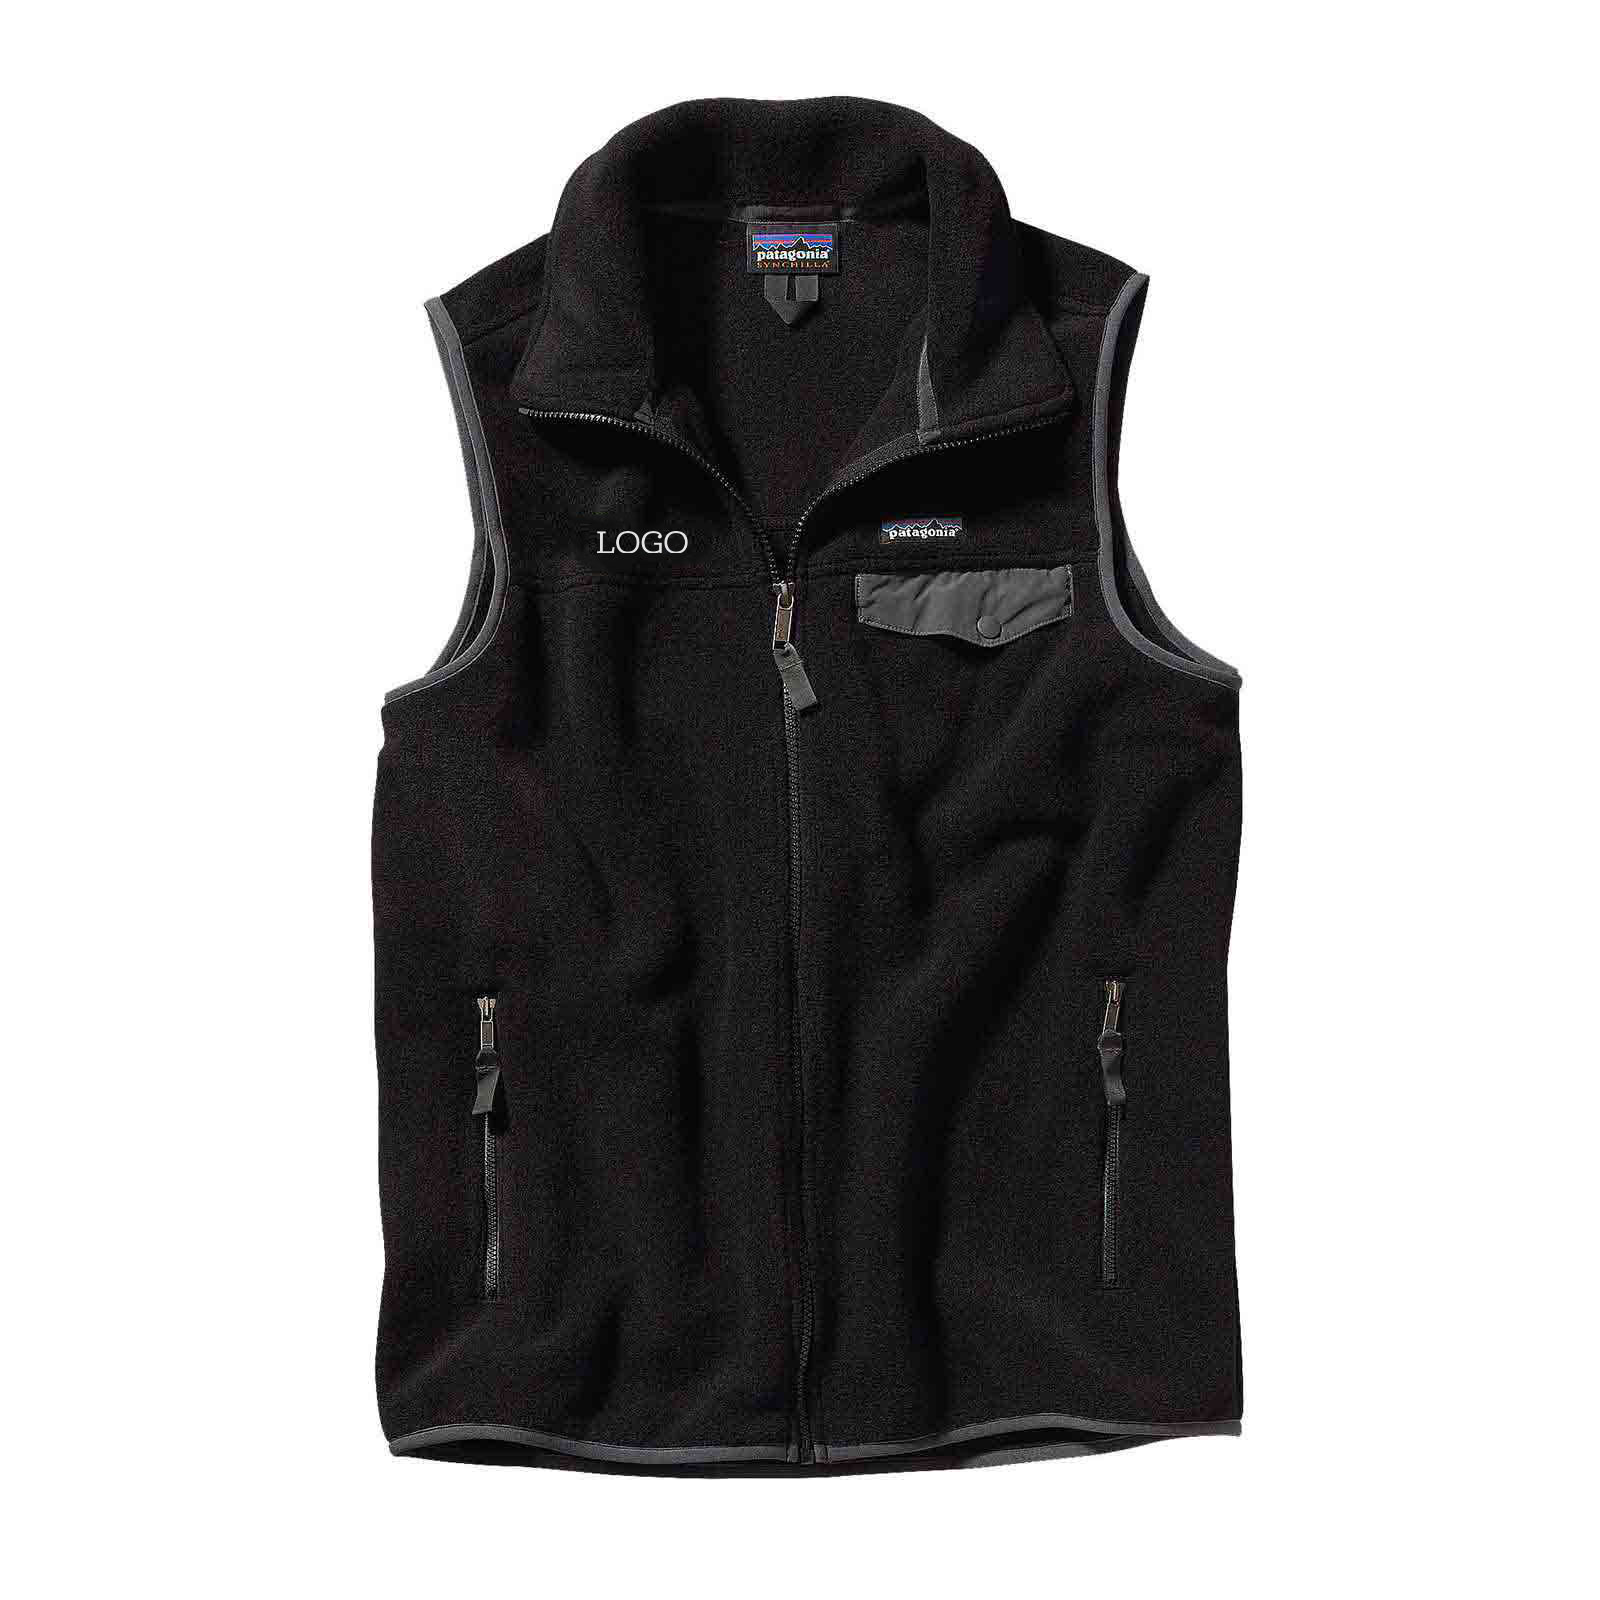 250792 lightweight synchilla fleece vest one location embroidery up to 4k stitches